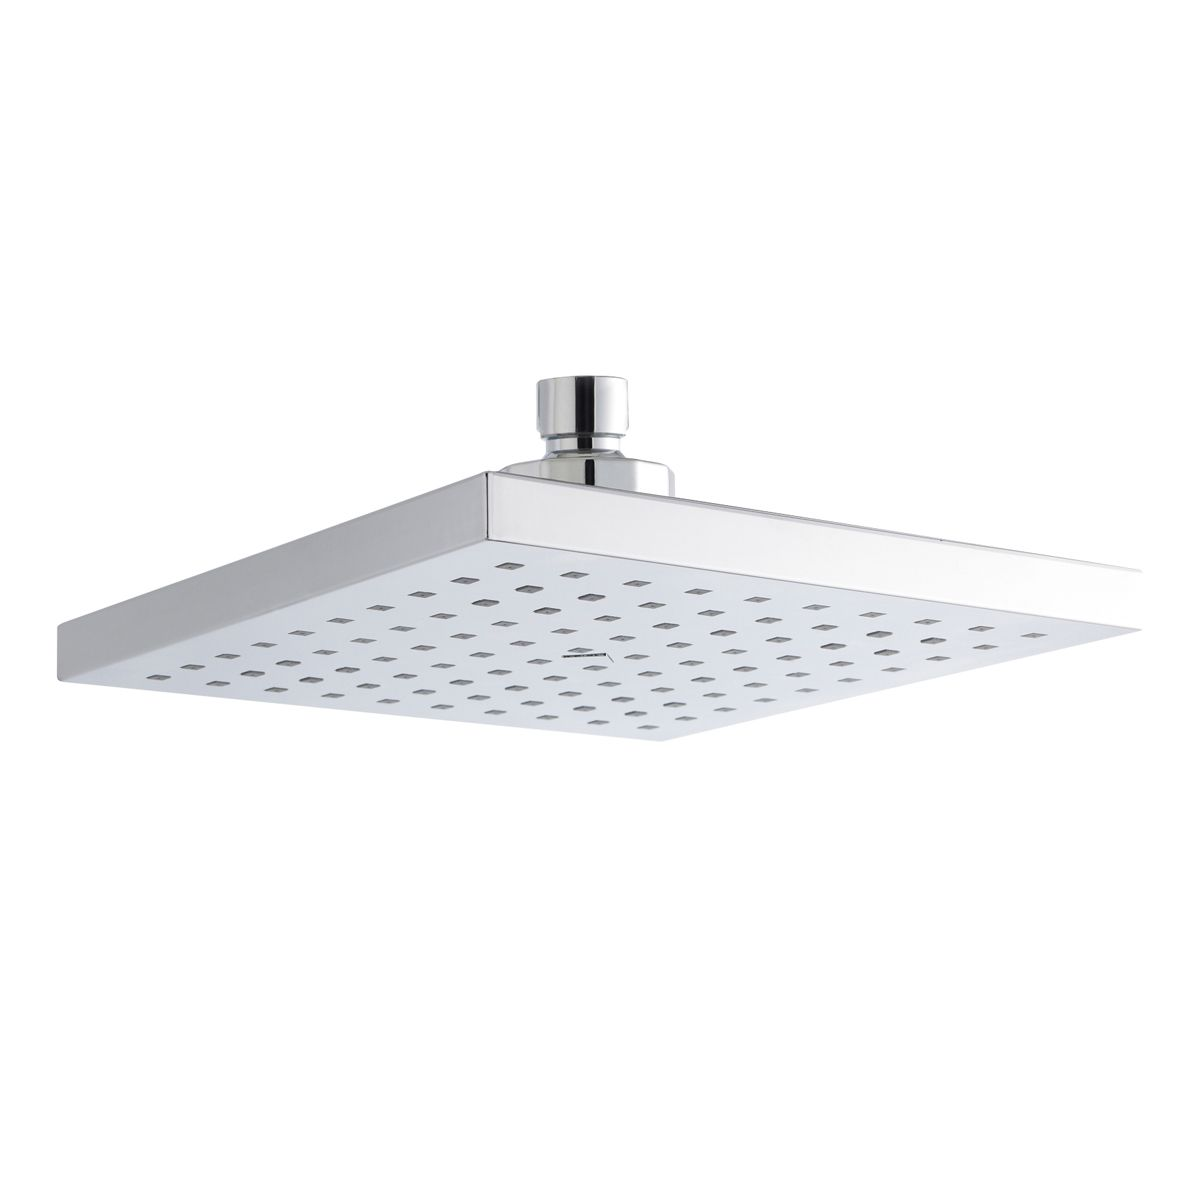 Nuie Square Fixed Shower Head 200mm